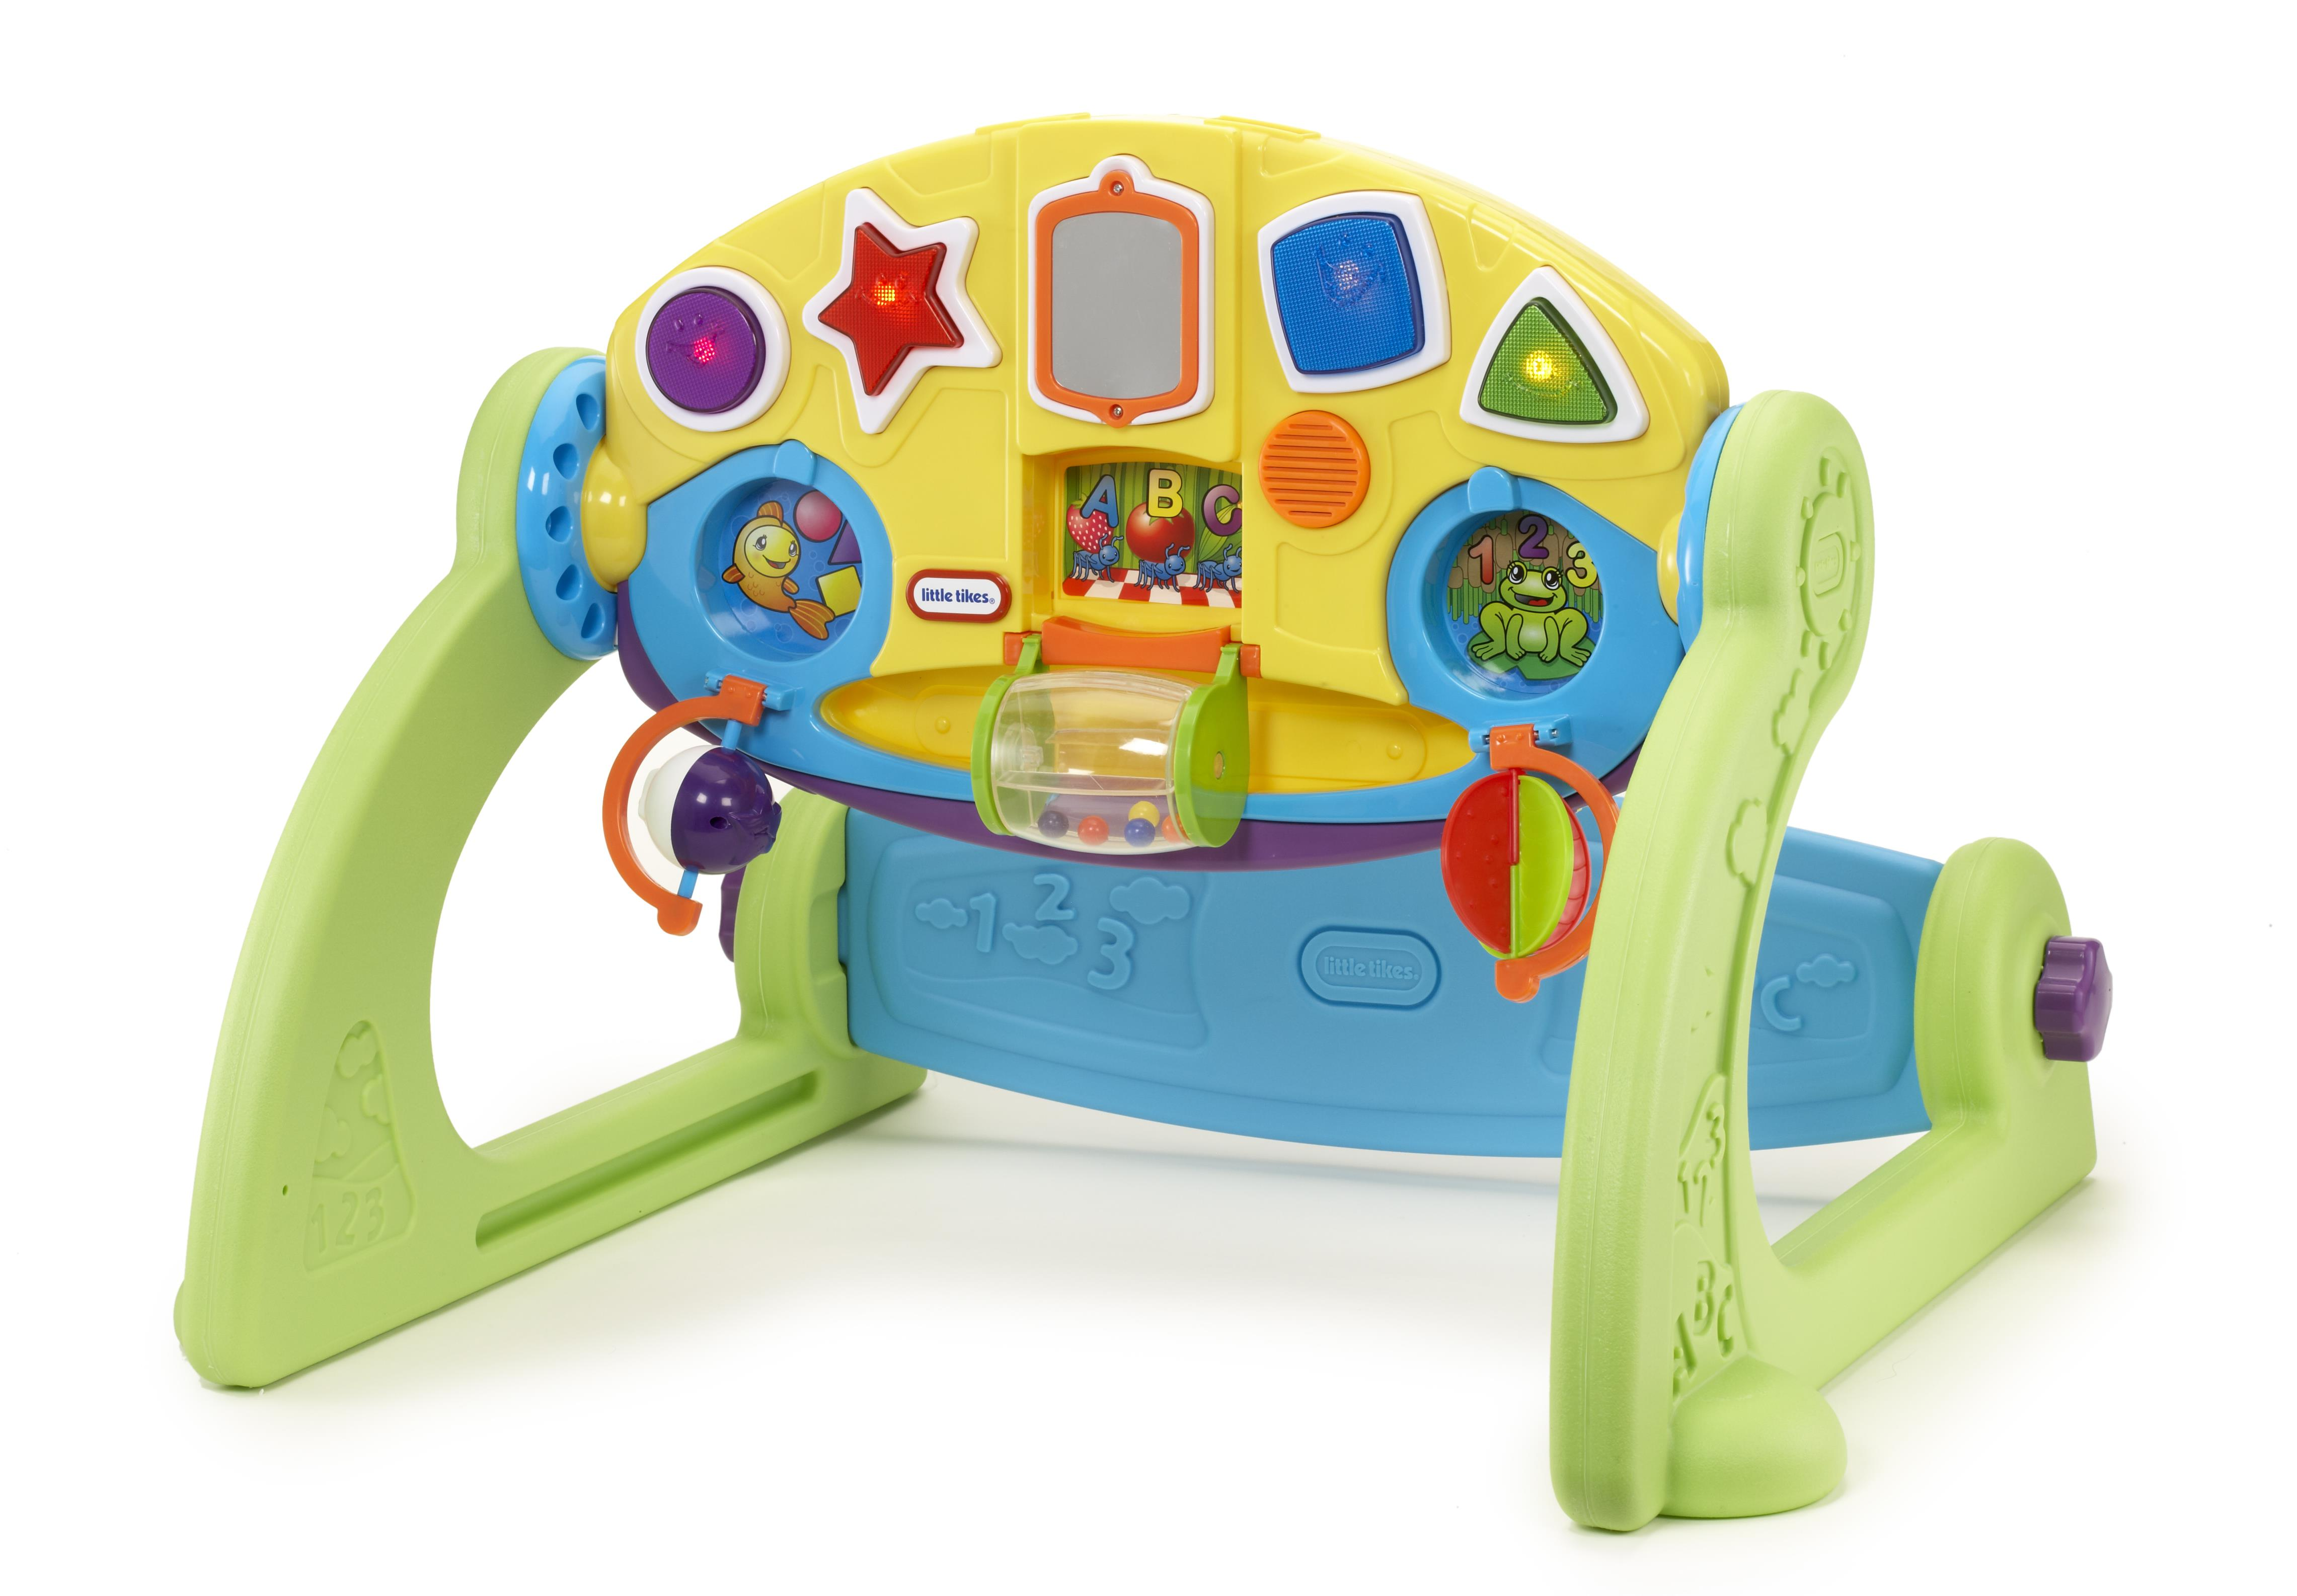 Little Tikes Little Tikes 5 In 1 Adjustable Gym By Oj Commerce 635908m